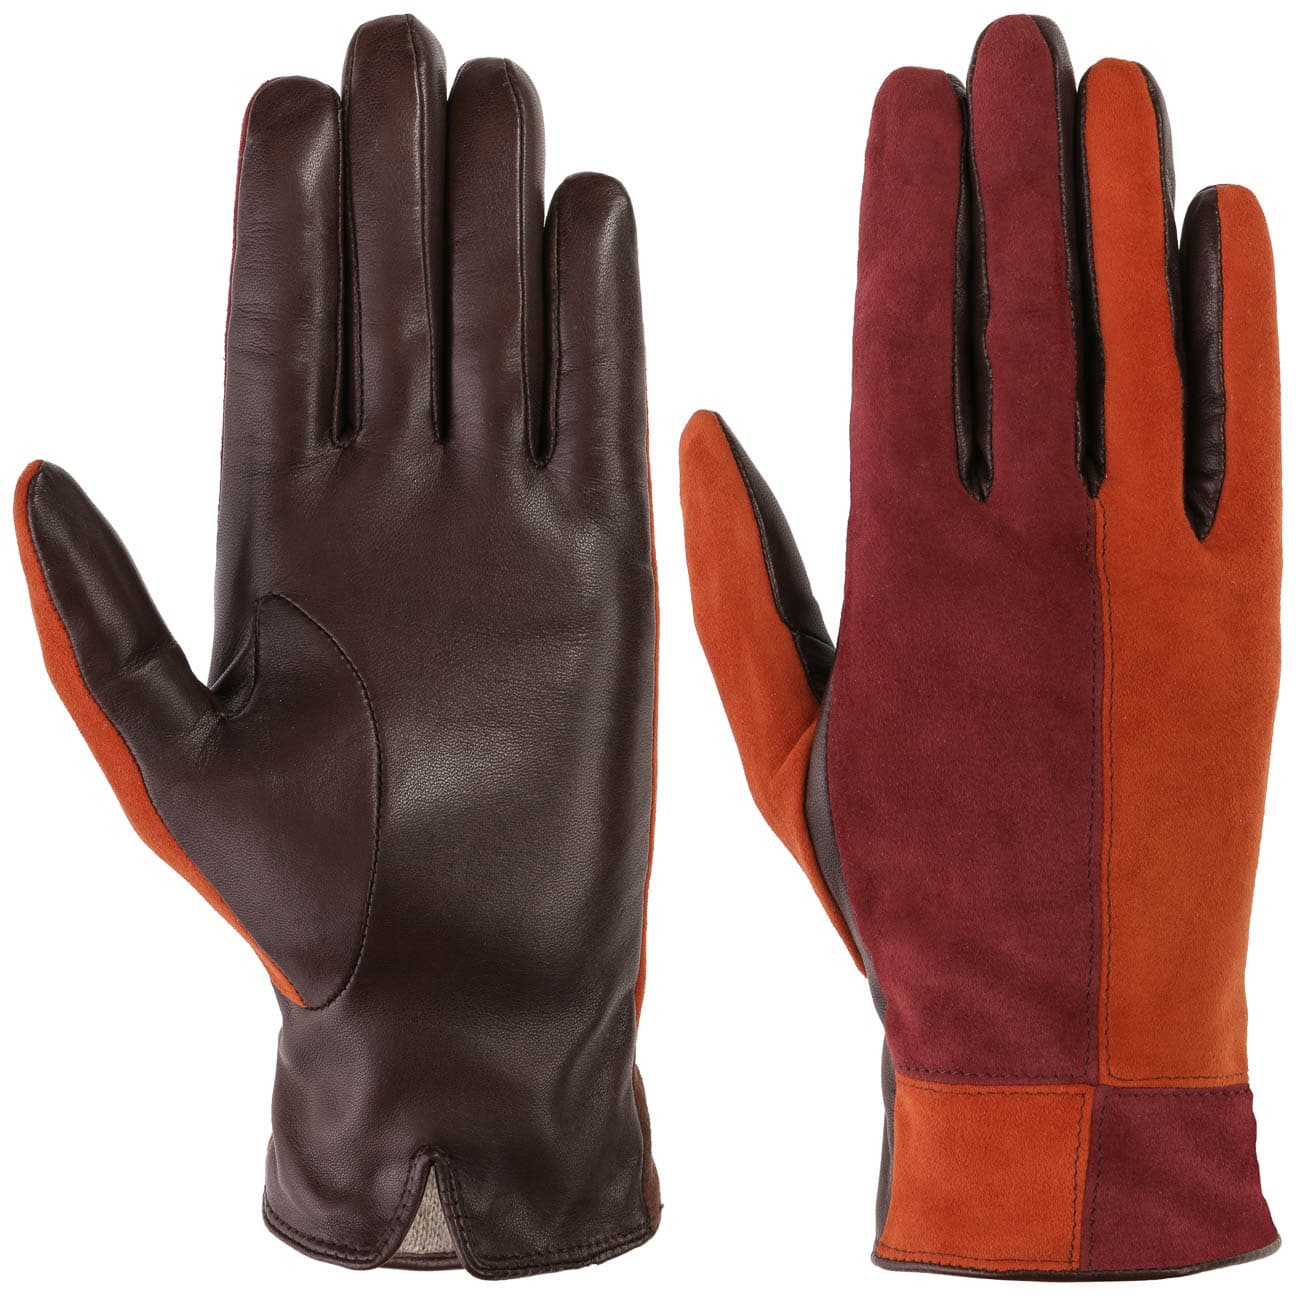 Guantes de Mujer Leather Mix by Caridei